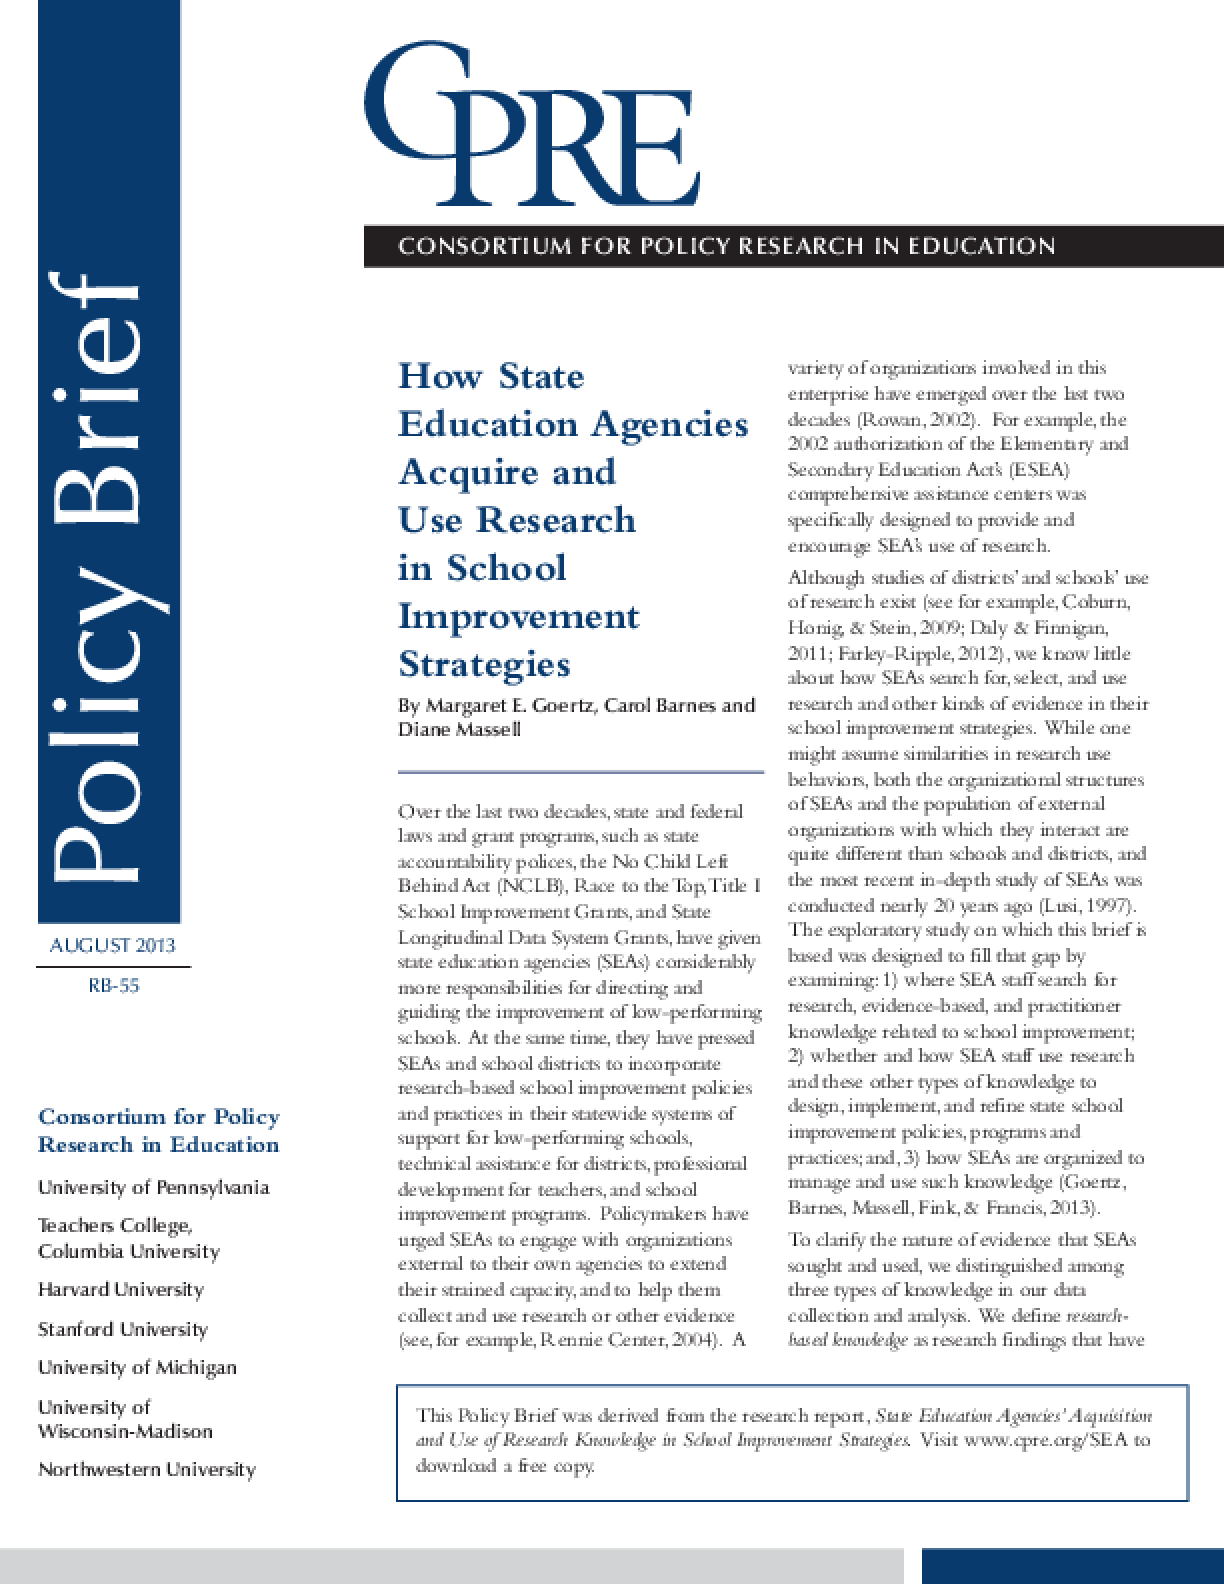 How State Education Agencies Acquire and Use Research in School Improvement Strategies, 2013